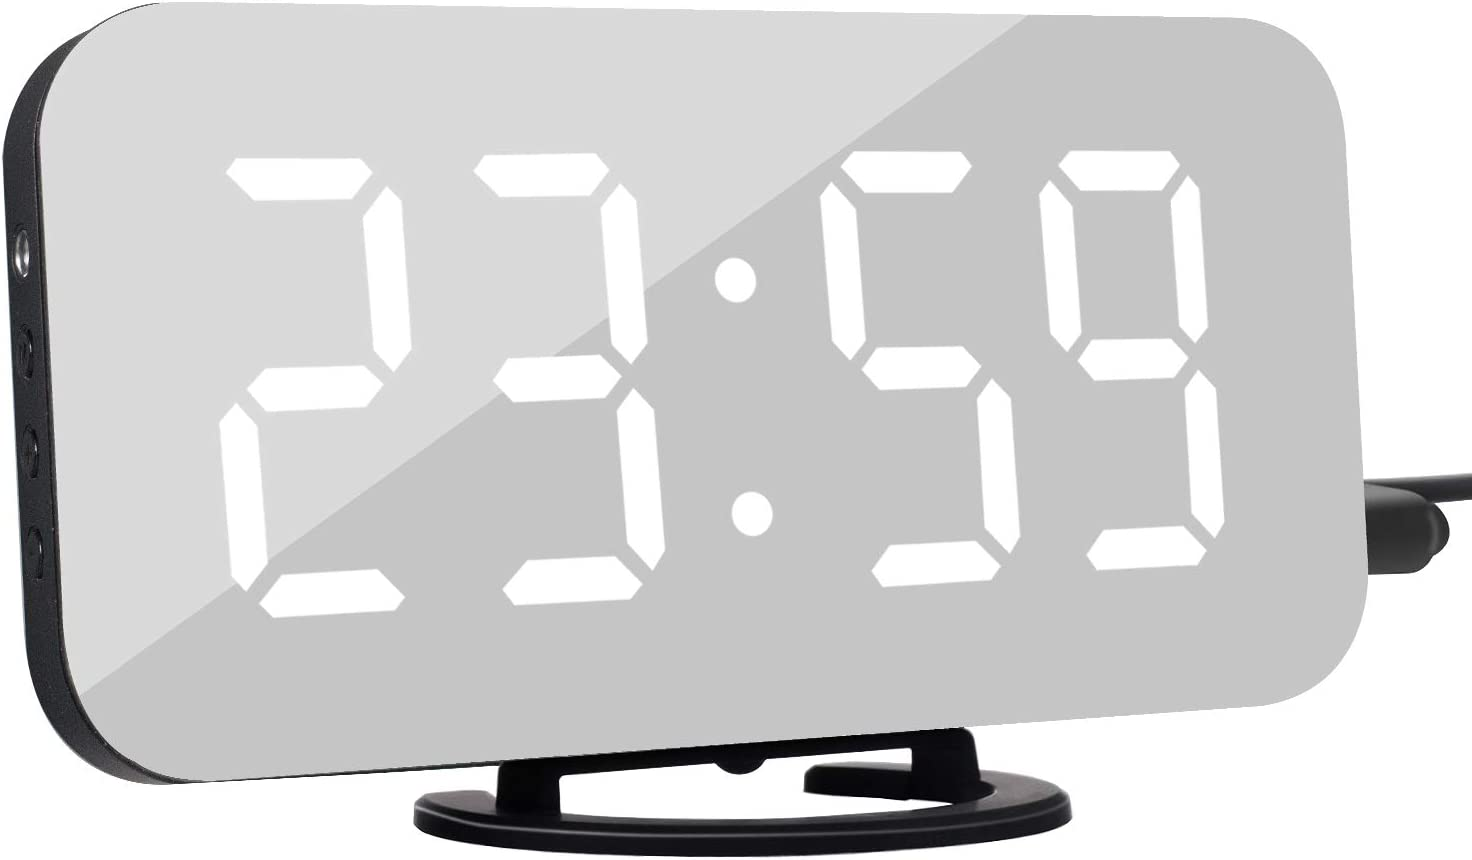 LED Digital Alarm Clock with Snooze Function and Auto/Custom Brightness Electronic Clock with 6.5